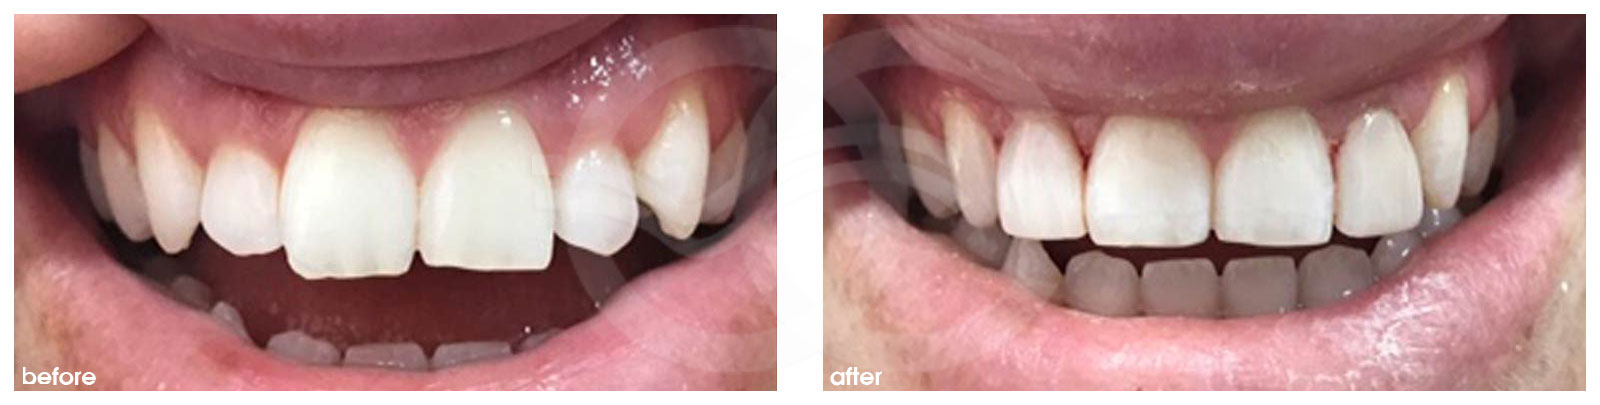 Cosmetic Dentistry Before After Gum Line Corrected. Photo frontal Ocean Clinic Marbella Spain